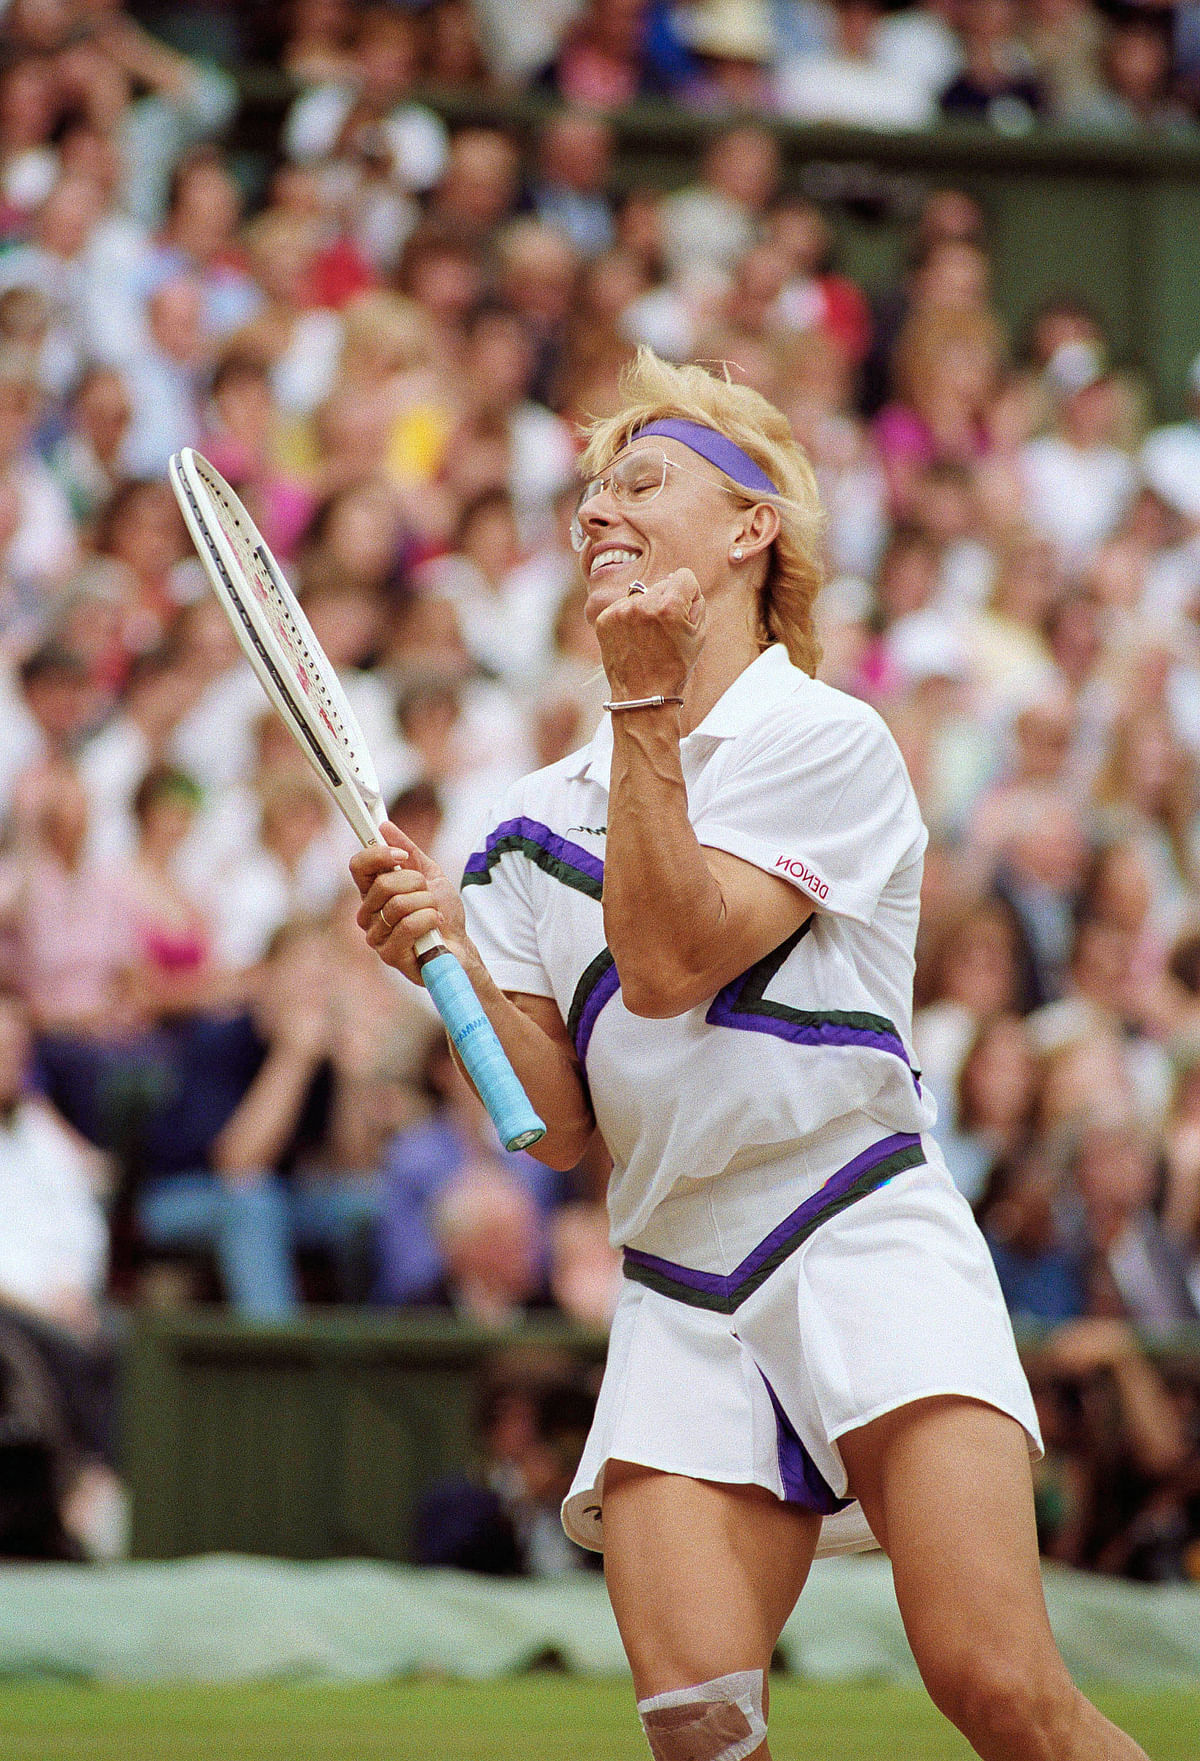 In this July 7, 1990 photo, Martina Navratilova is seen in action during the 1990 Wimbledon Final.&nbsp;Navratilova, a Czech-born left-hander who became a U.S. citizen in 1981, won 18 Grand Slam singles titles, including nine Wimbledon crowns between 1978 and 1990. (Photo: AP)<a></a>